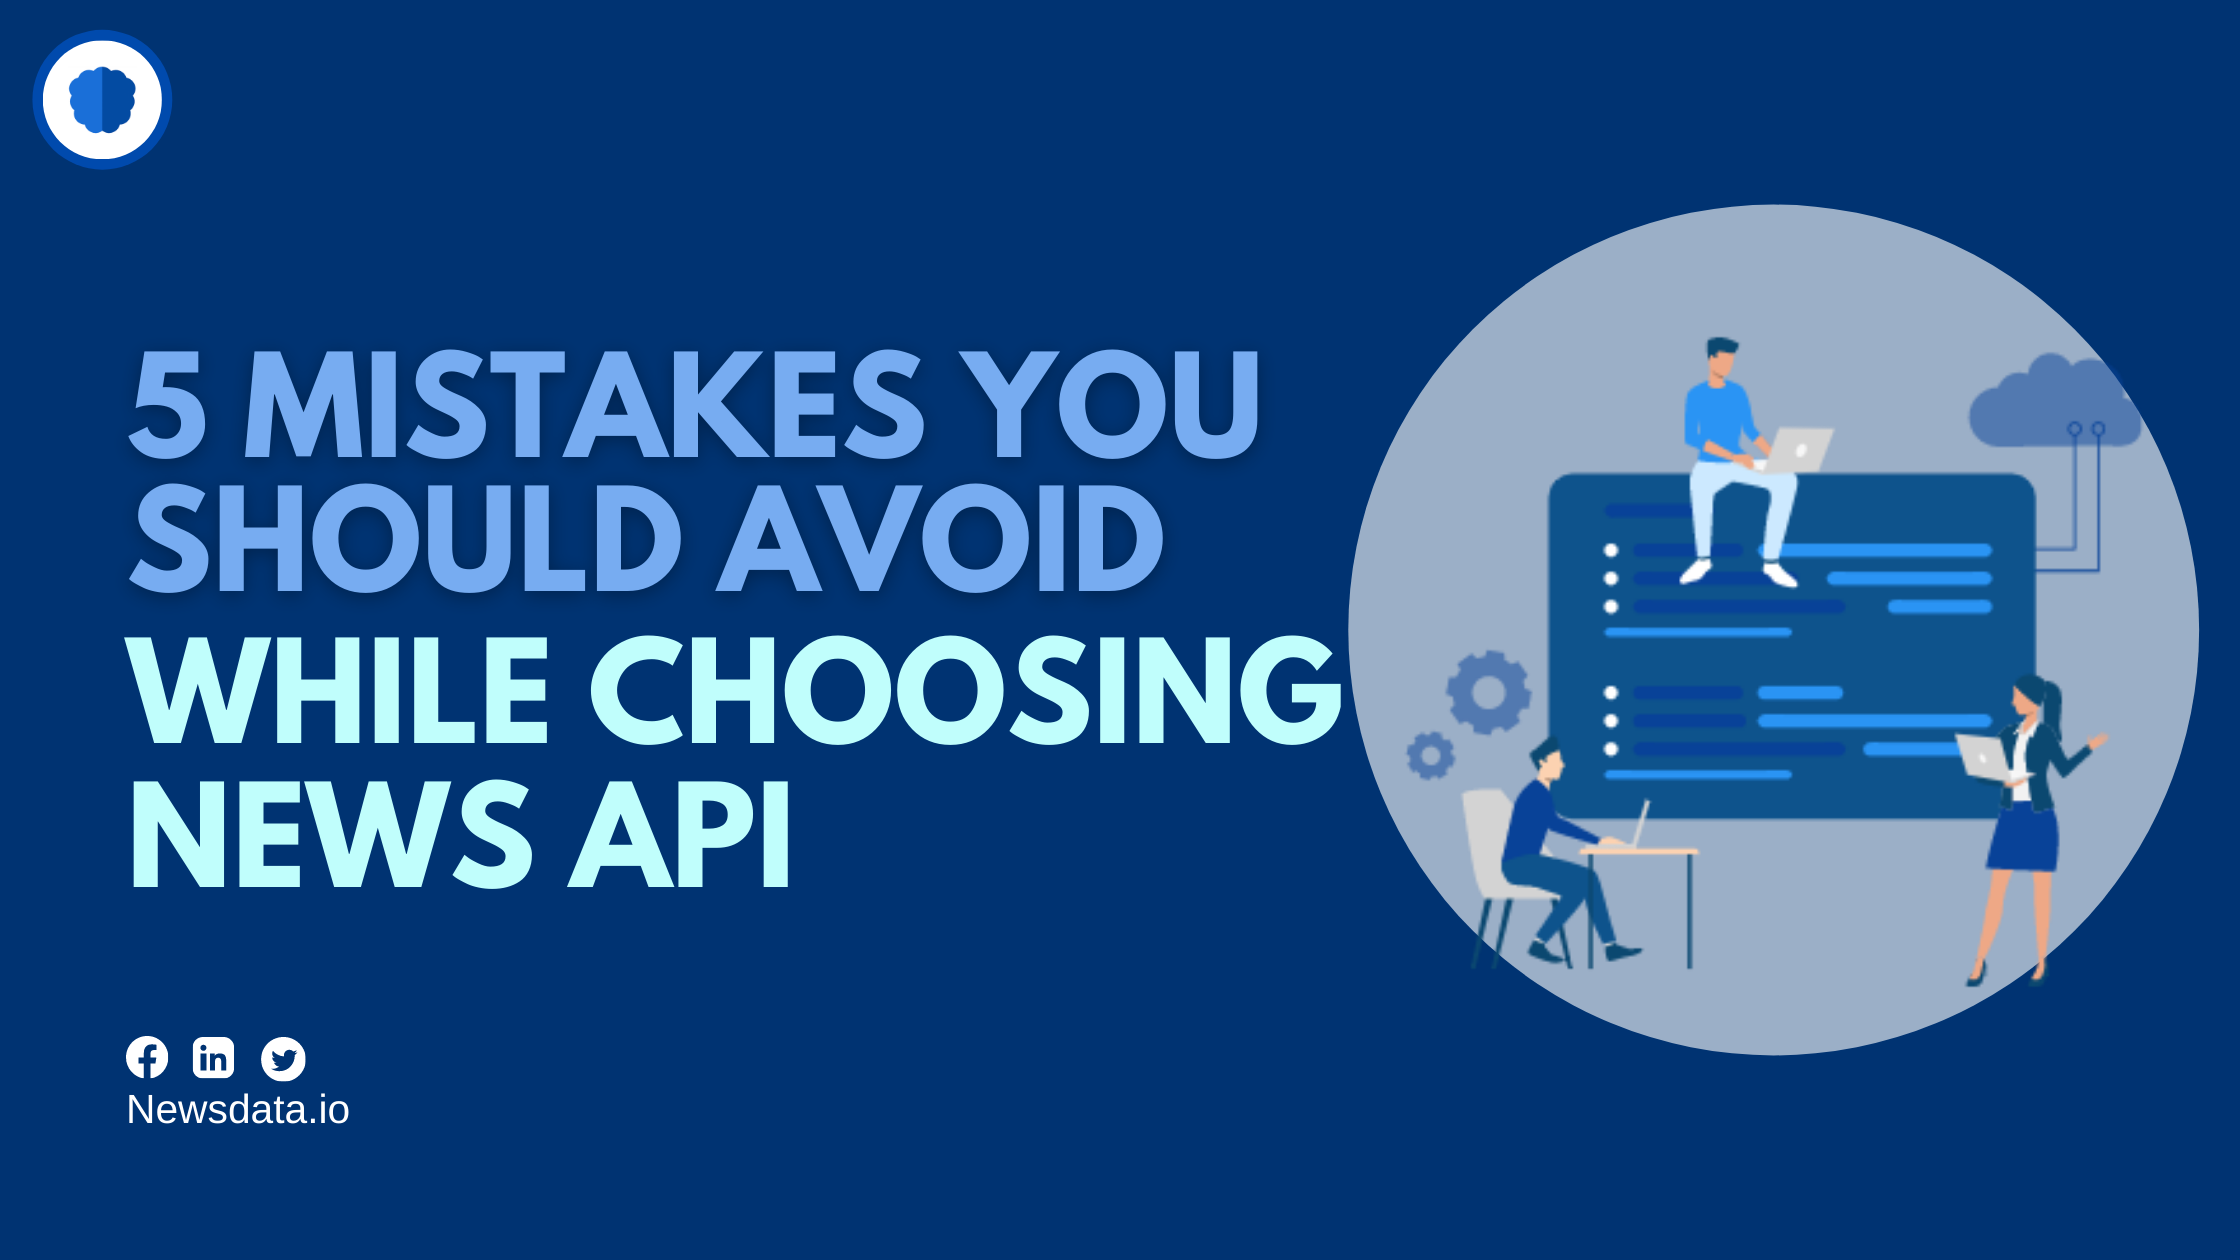 5 mistakes you should avoid while news a news API